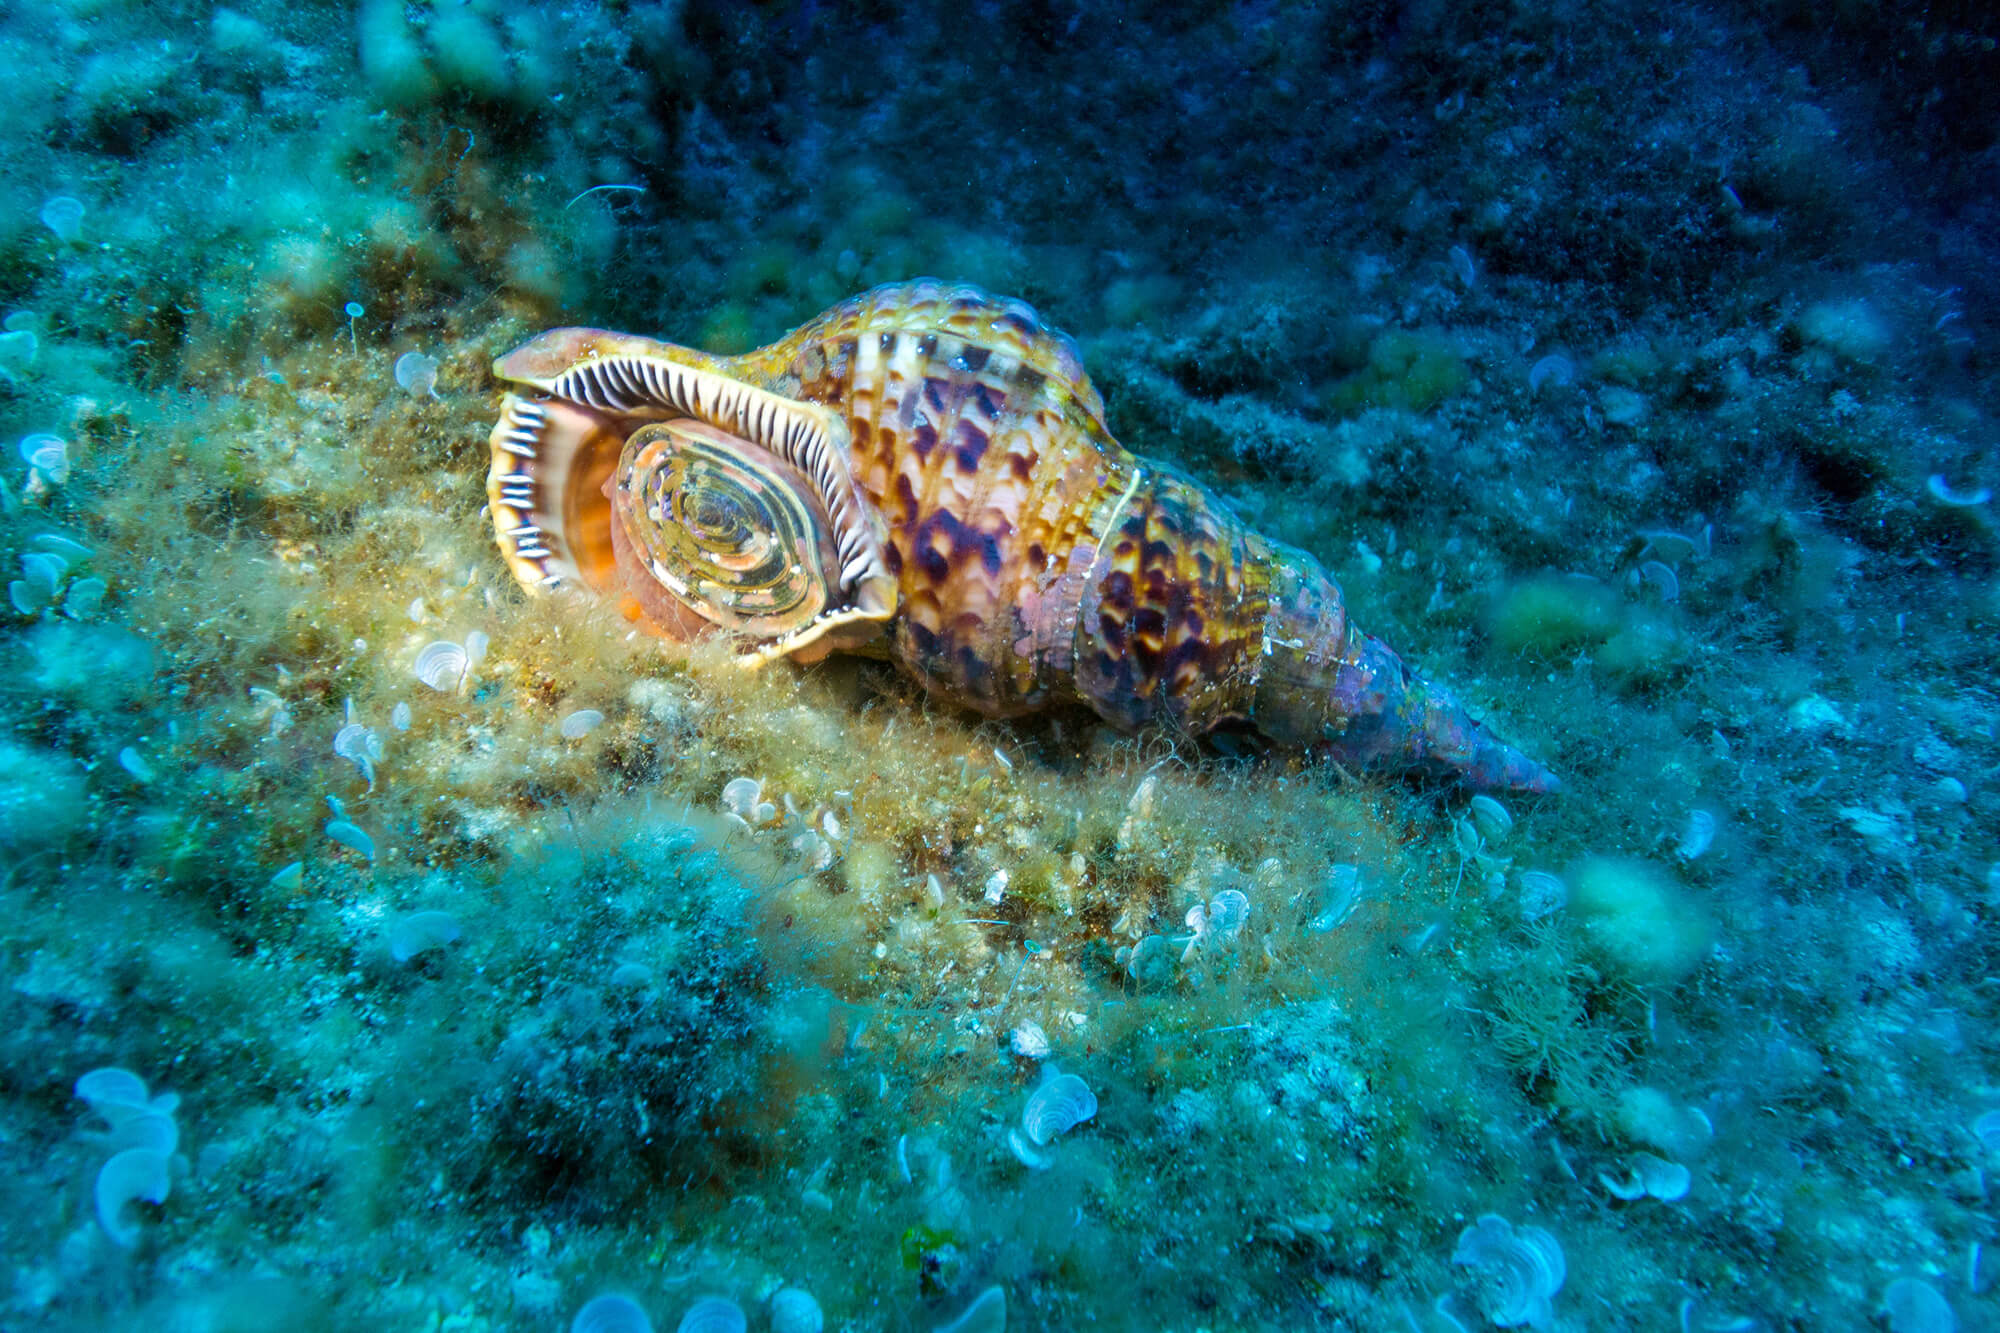 Triton Snail From A Dive On Zakynthos Island, Greece